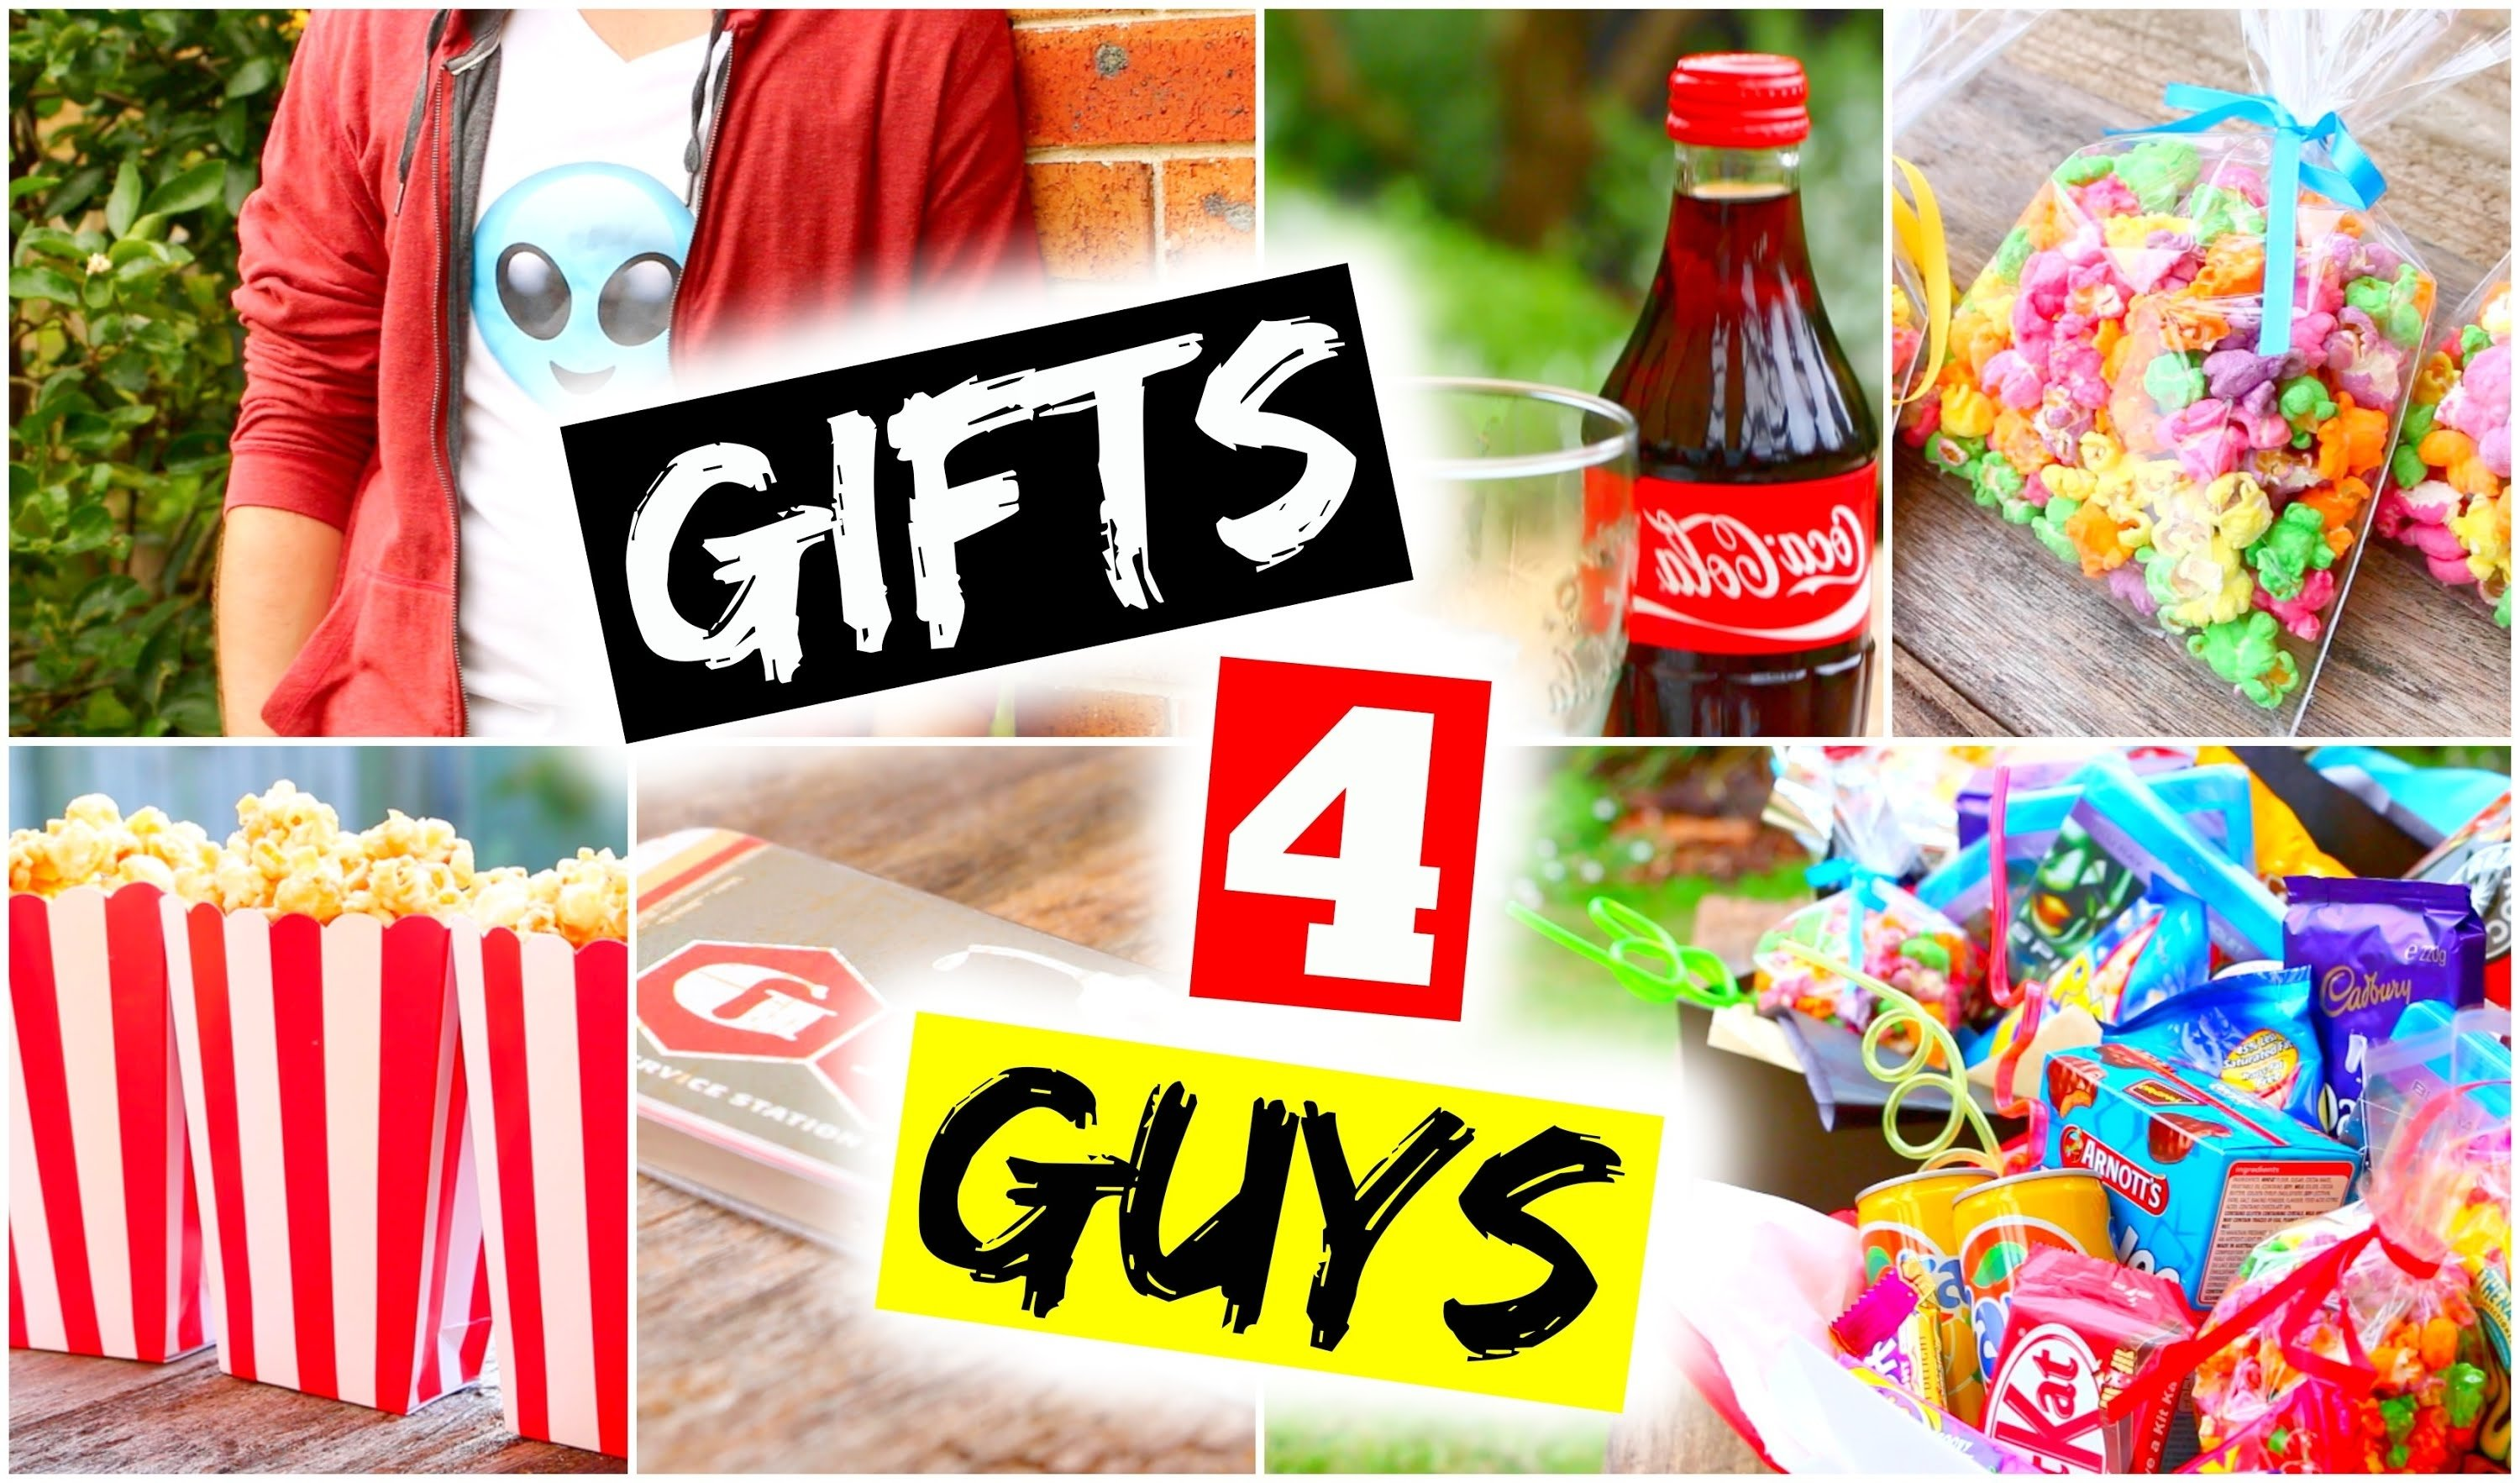 10 Attractive Diy Christmas Gift Ideas For Men diy gifts for guys diy gift ideas for boyfriend dad brother 11 2020